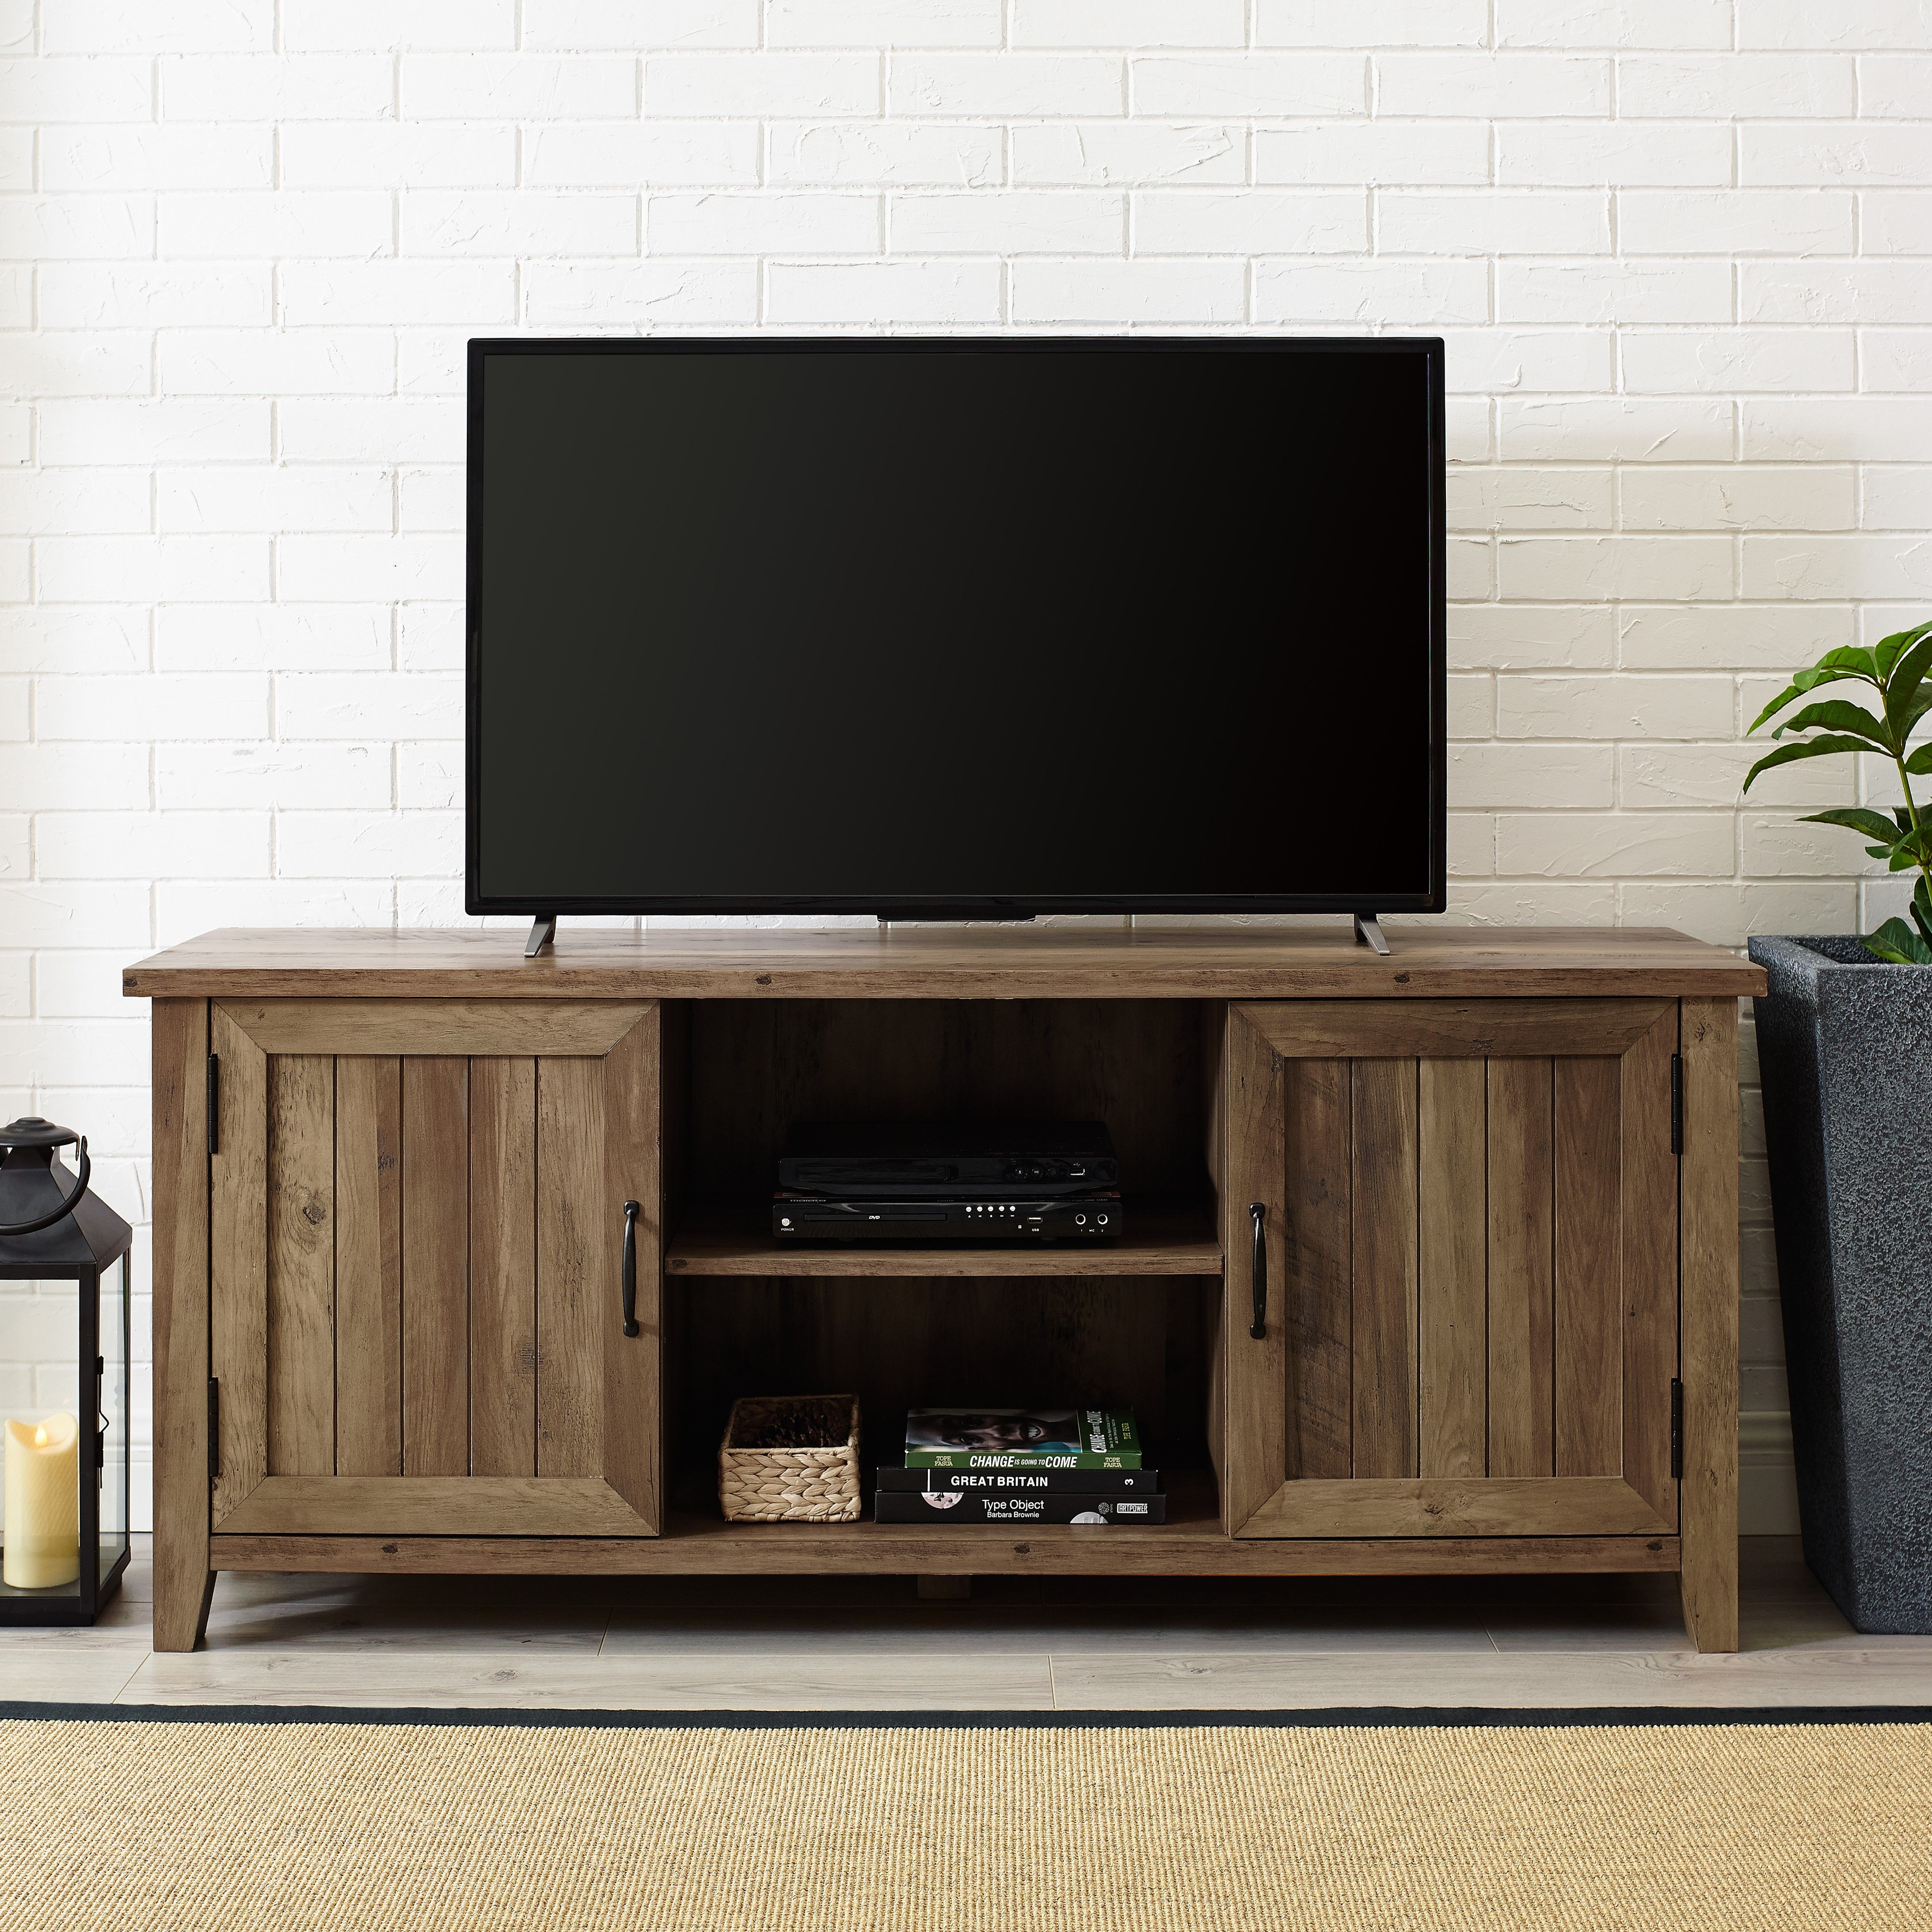 Home Oak tv stand, Farmhouse tv stand, Wood tv stand rustic